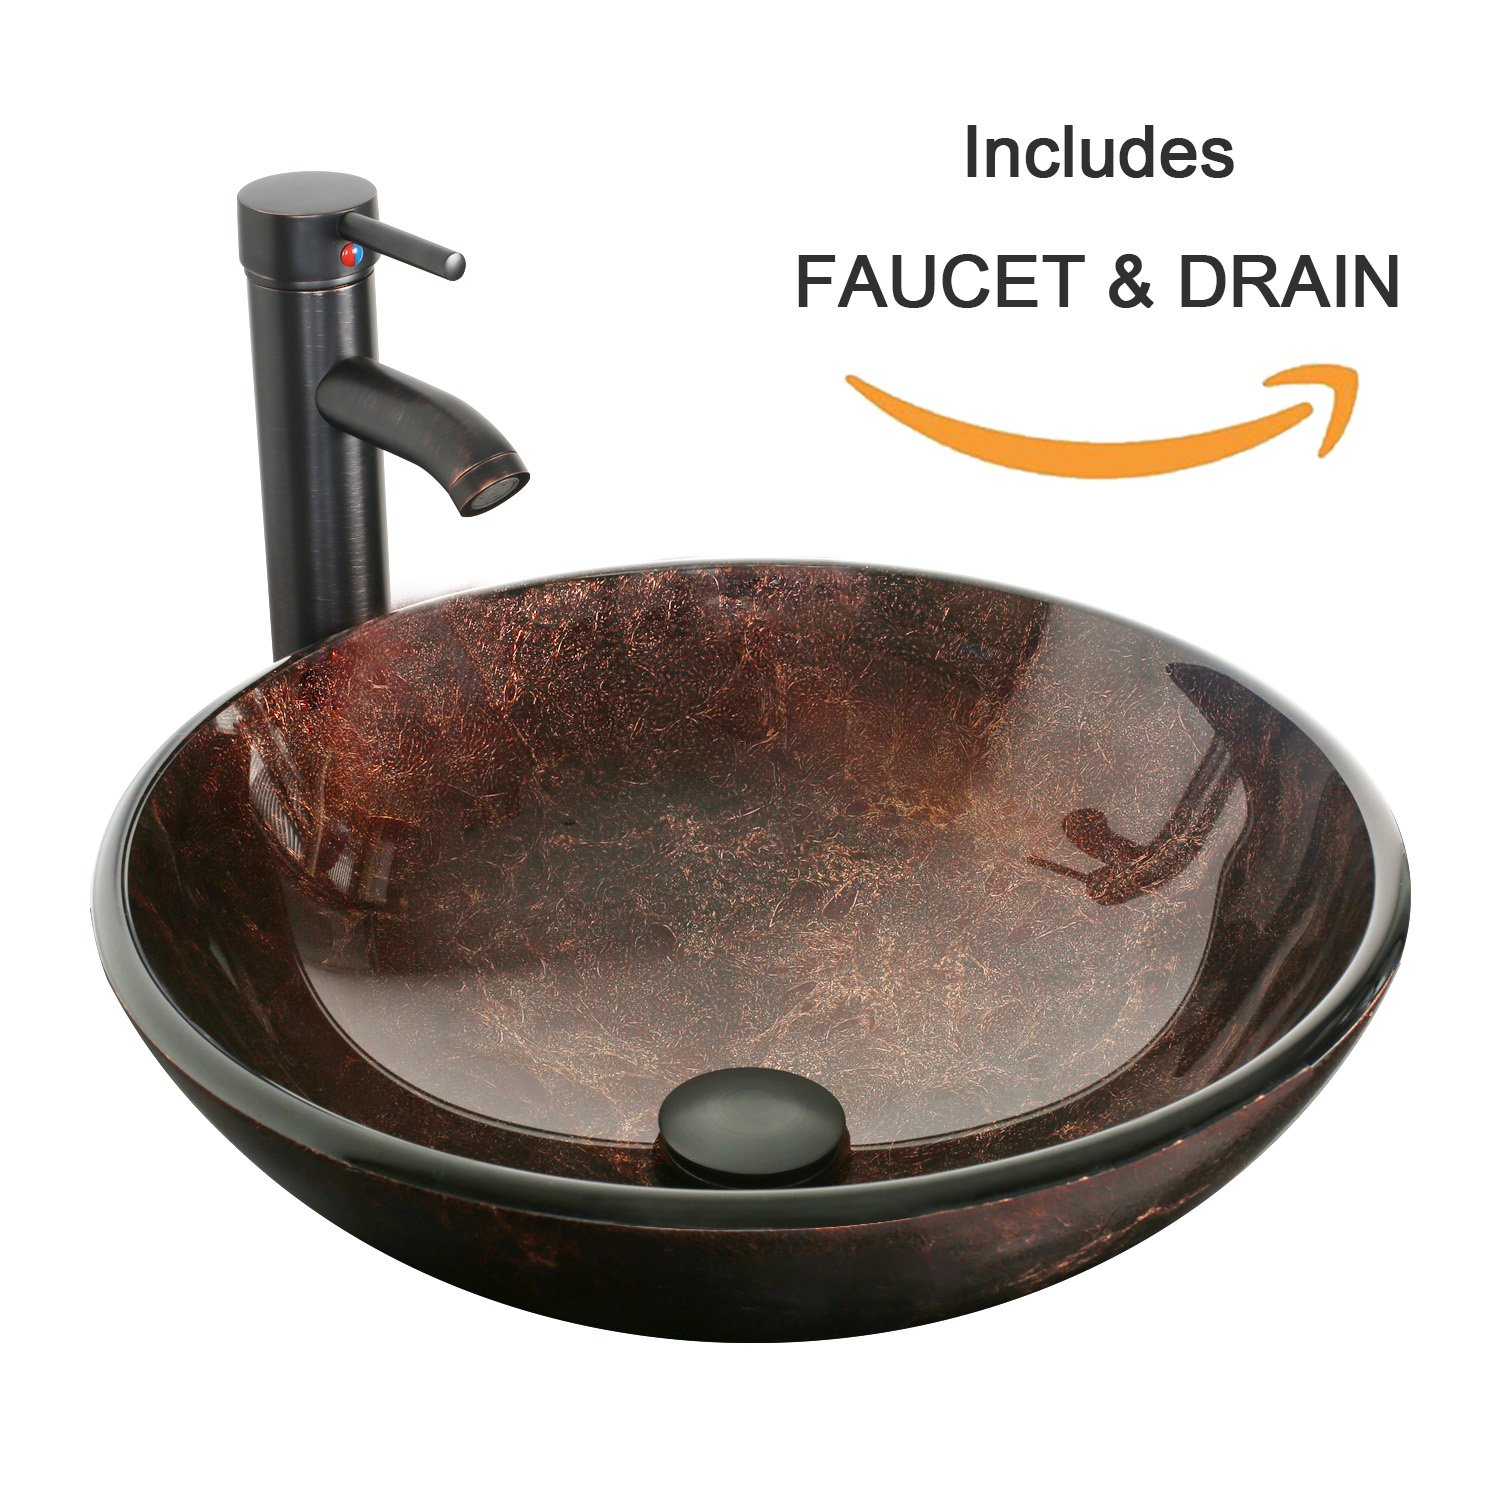 eclife Bathroom Modern Artistic Vessel Sink Combo Modern Round Tempered Glass Basin Oil Rubbed Bronze 1.5 GPM Water Save Faucet Pop Up Drain A09